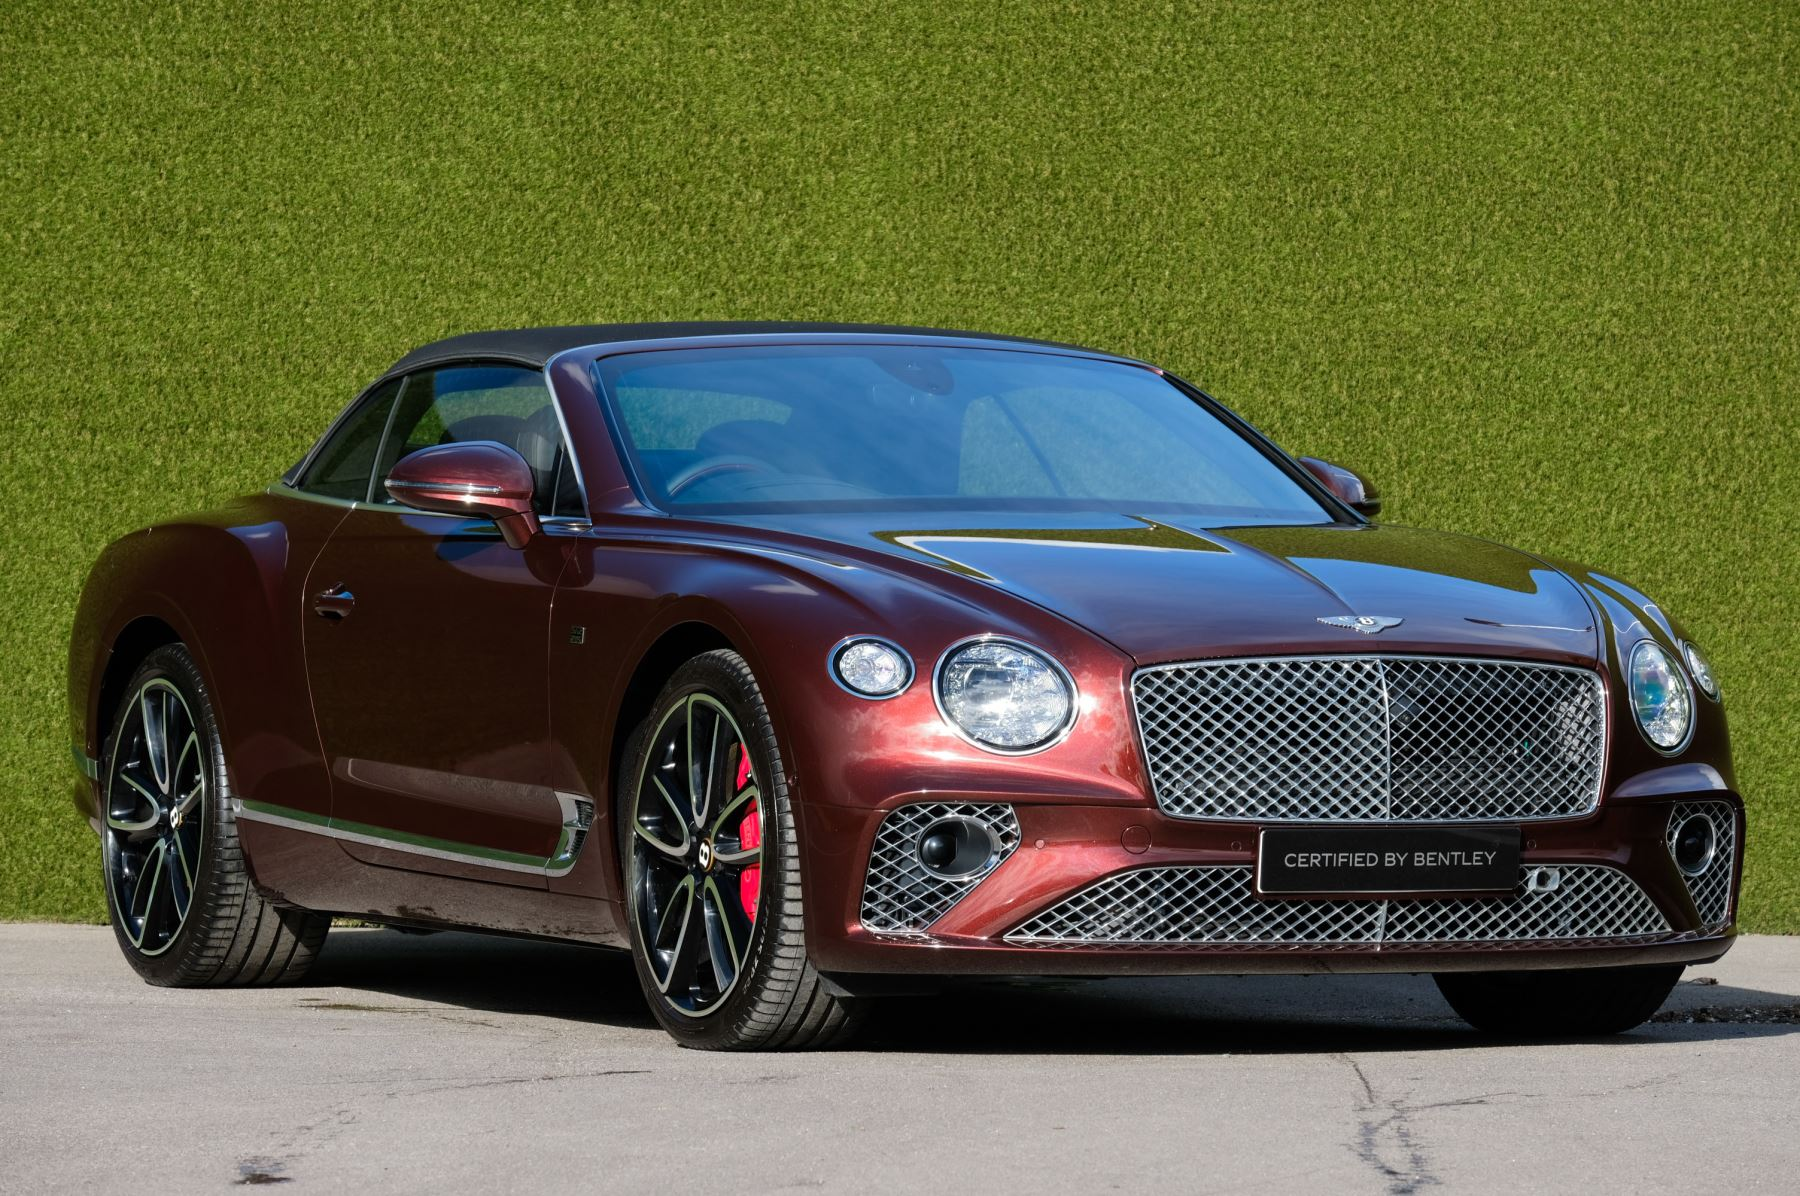 Bentley Continental GTC 6.0 W12 - First Edition Specification image 1